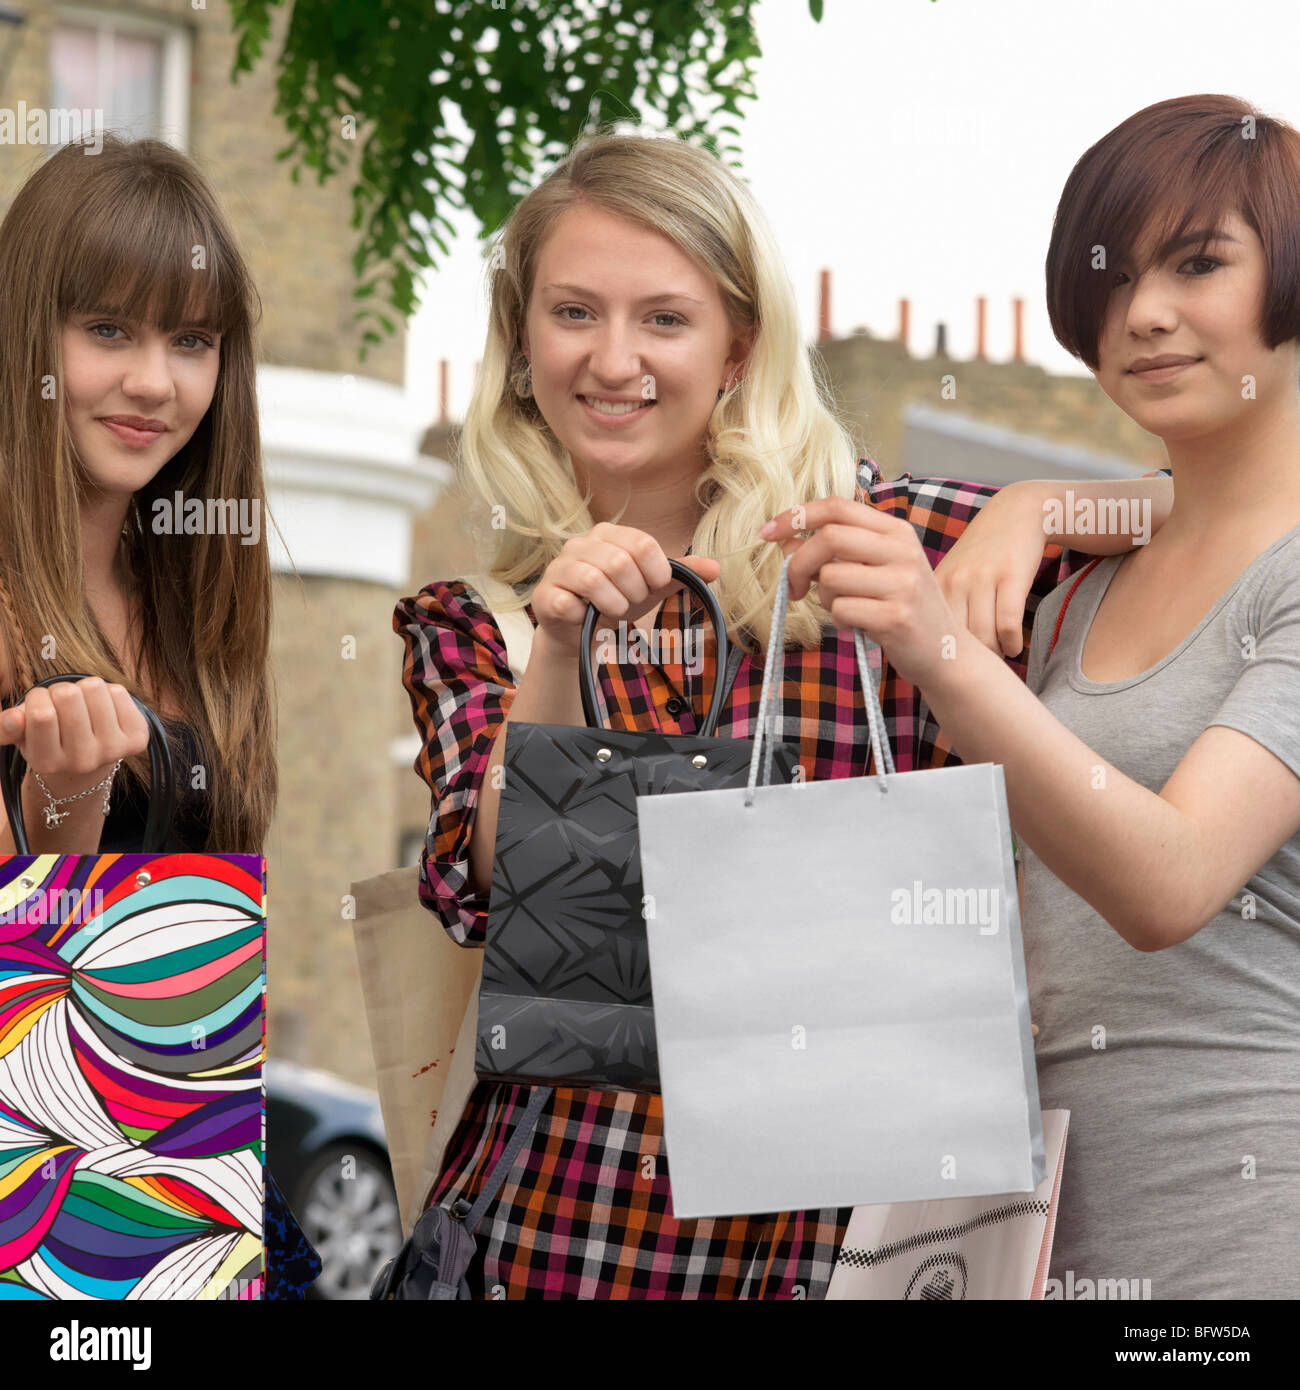 3 young women holding up bags - Stock Image